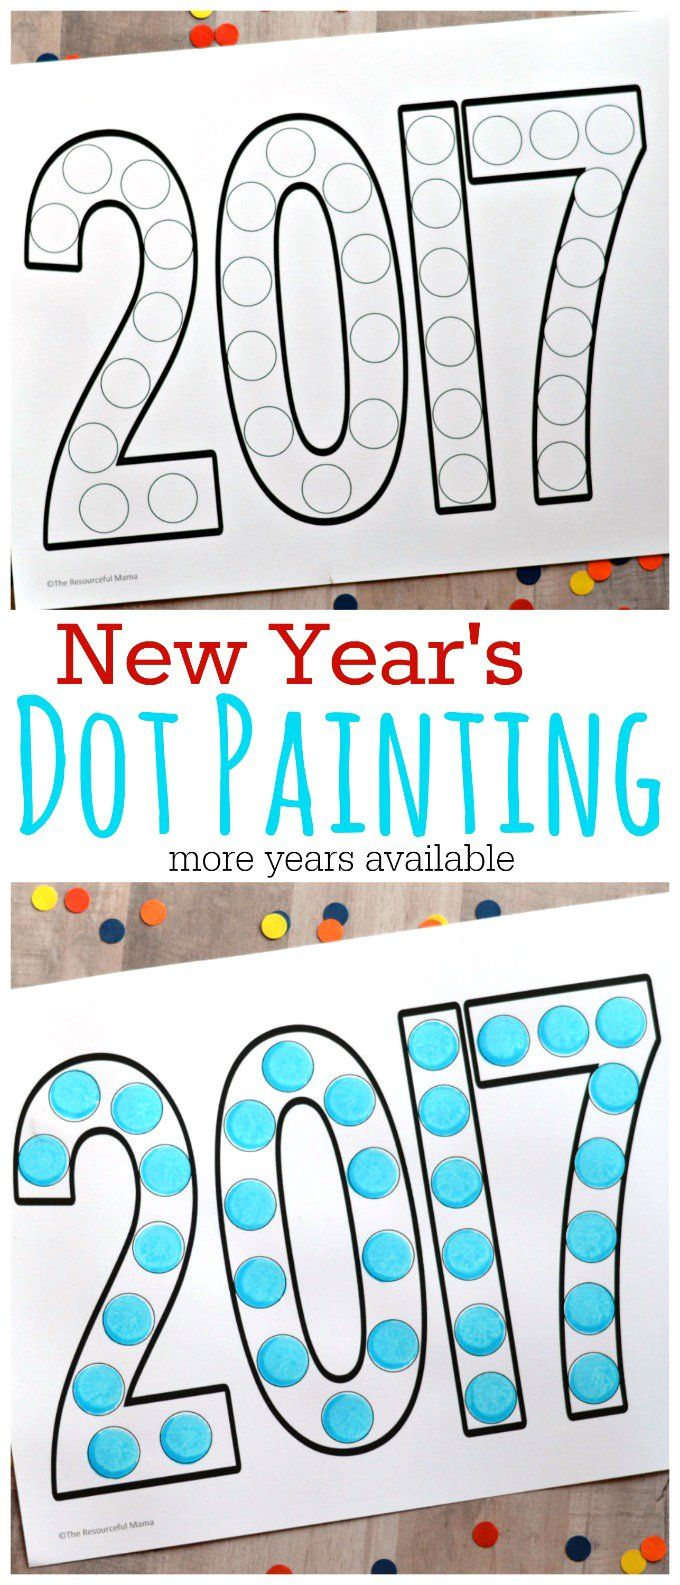 dot painting new years activity for kids preschool winterwinter activitieskid - Free Painting Games For Preschoolers